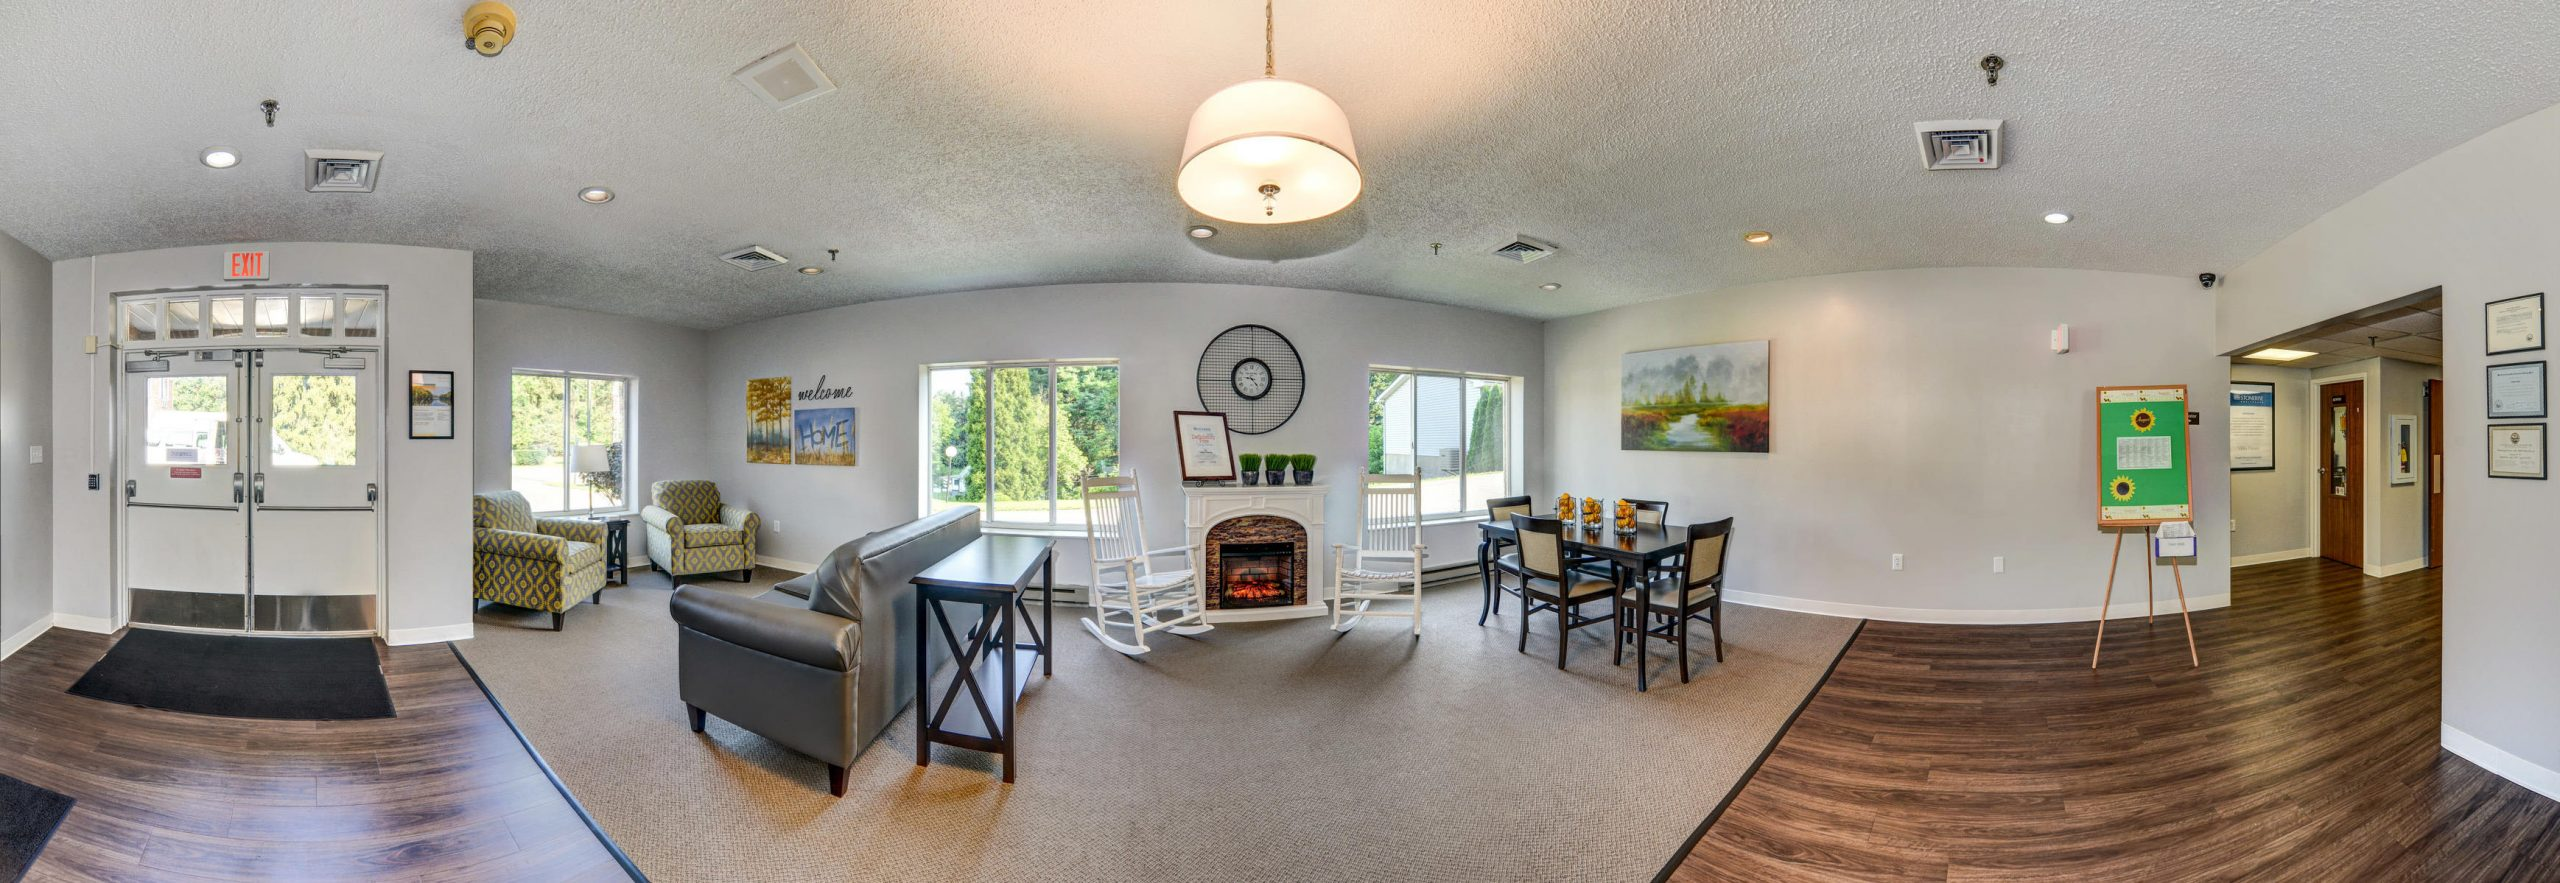 Panoramic view of Stonerise Wellsburg lobby with fireplace and seating areas